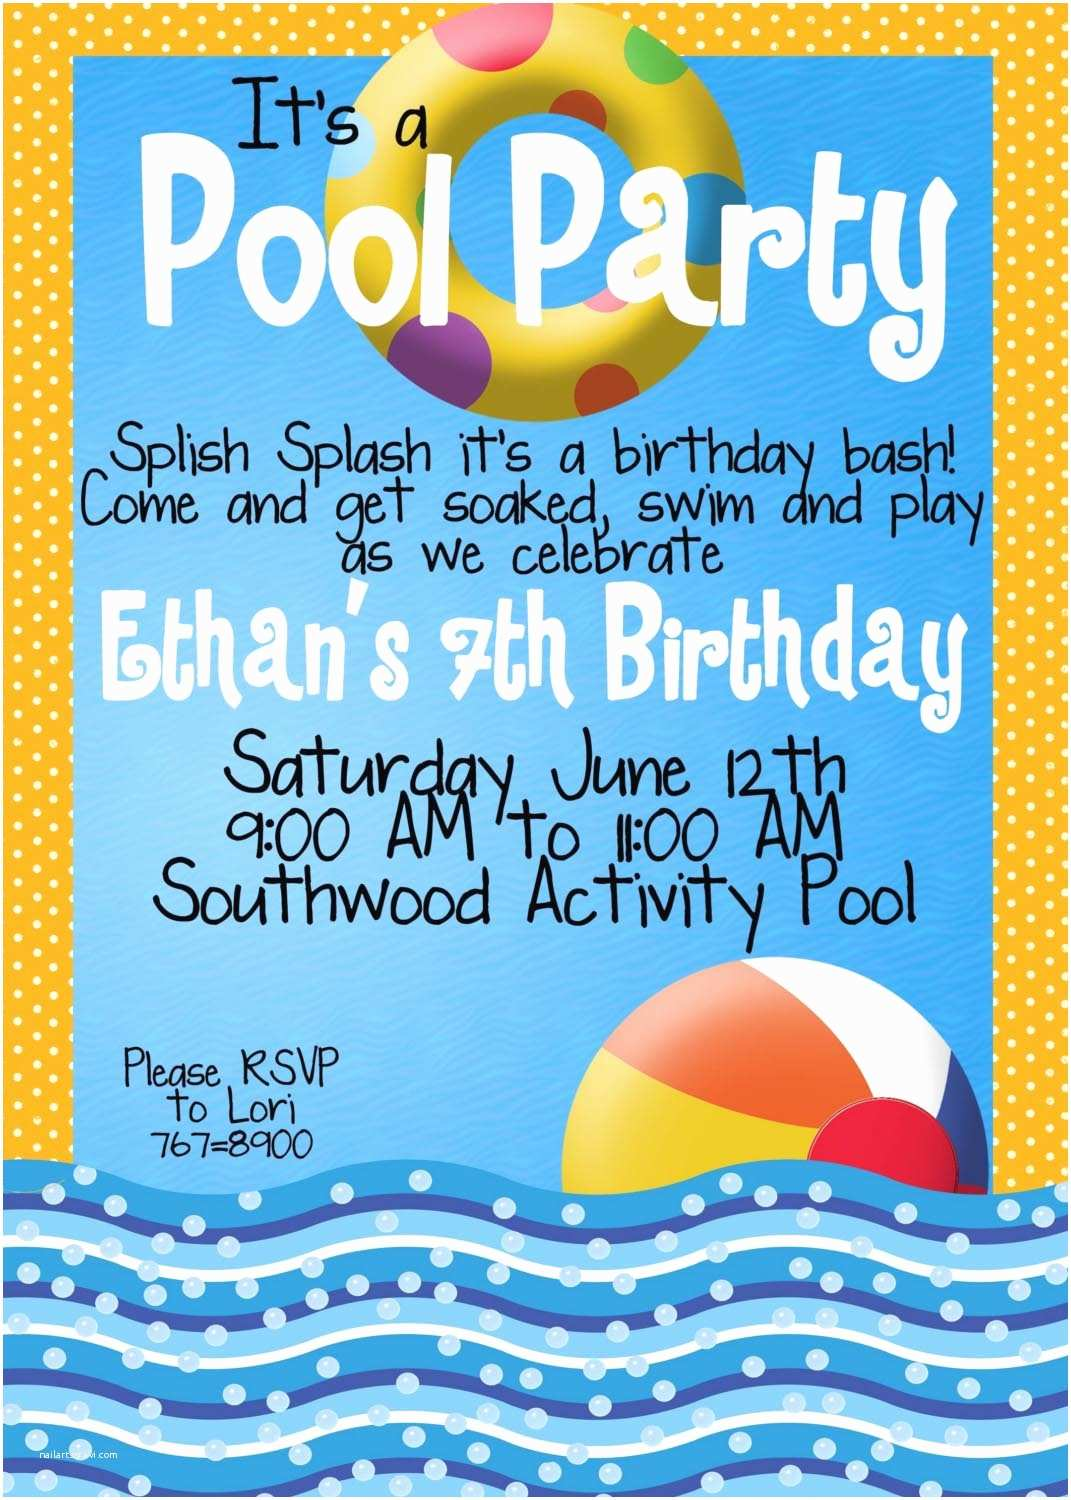 Kids Birthday Invitation Wording the Perfect Kids Pool Party